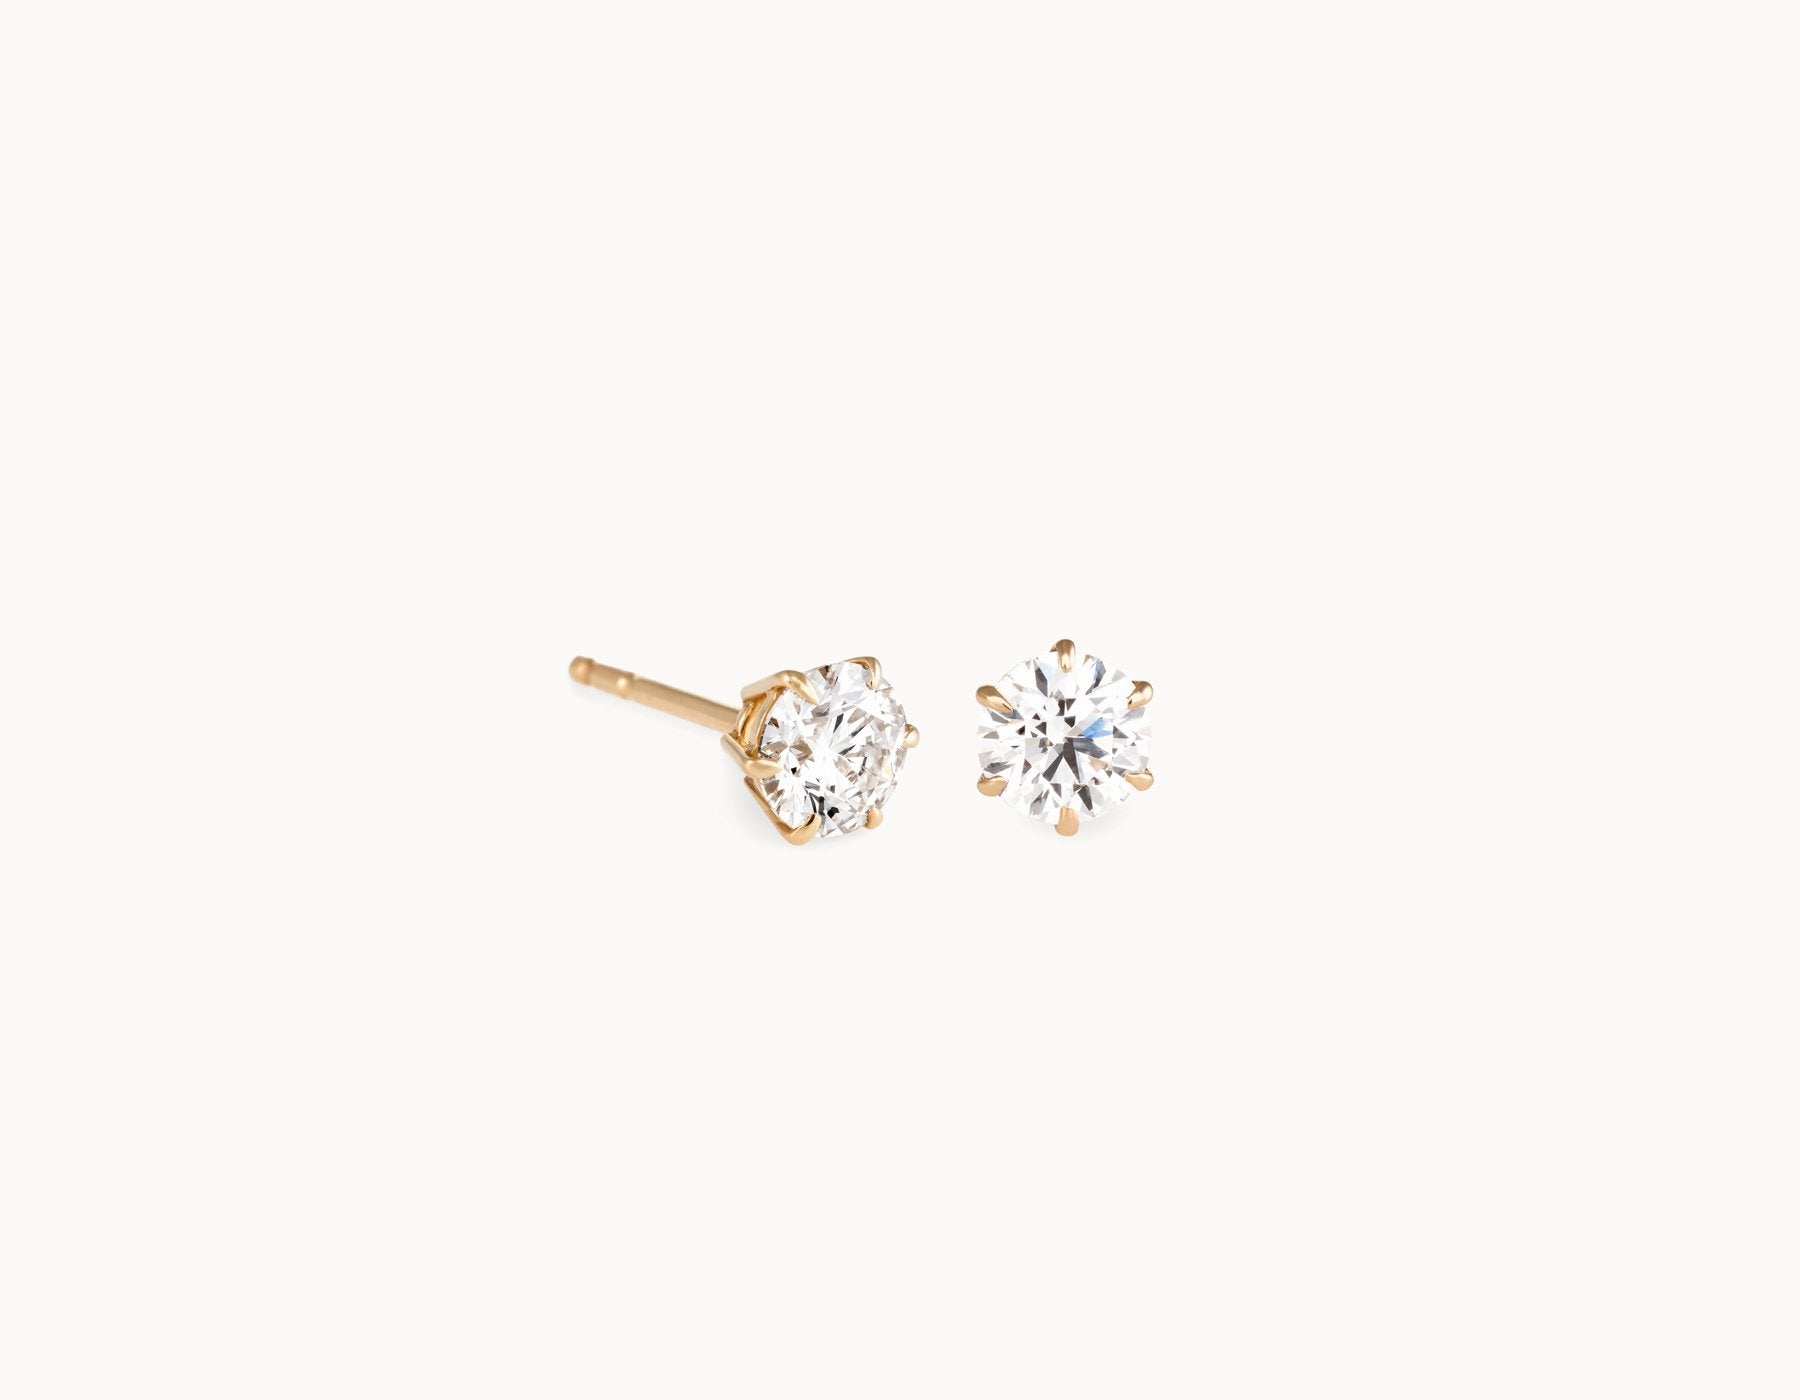 earring studs diamond thumb m stud wg md br details very cfm j carat single